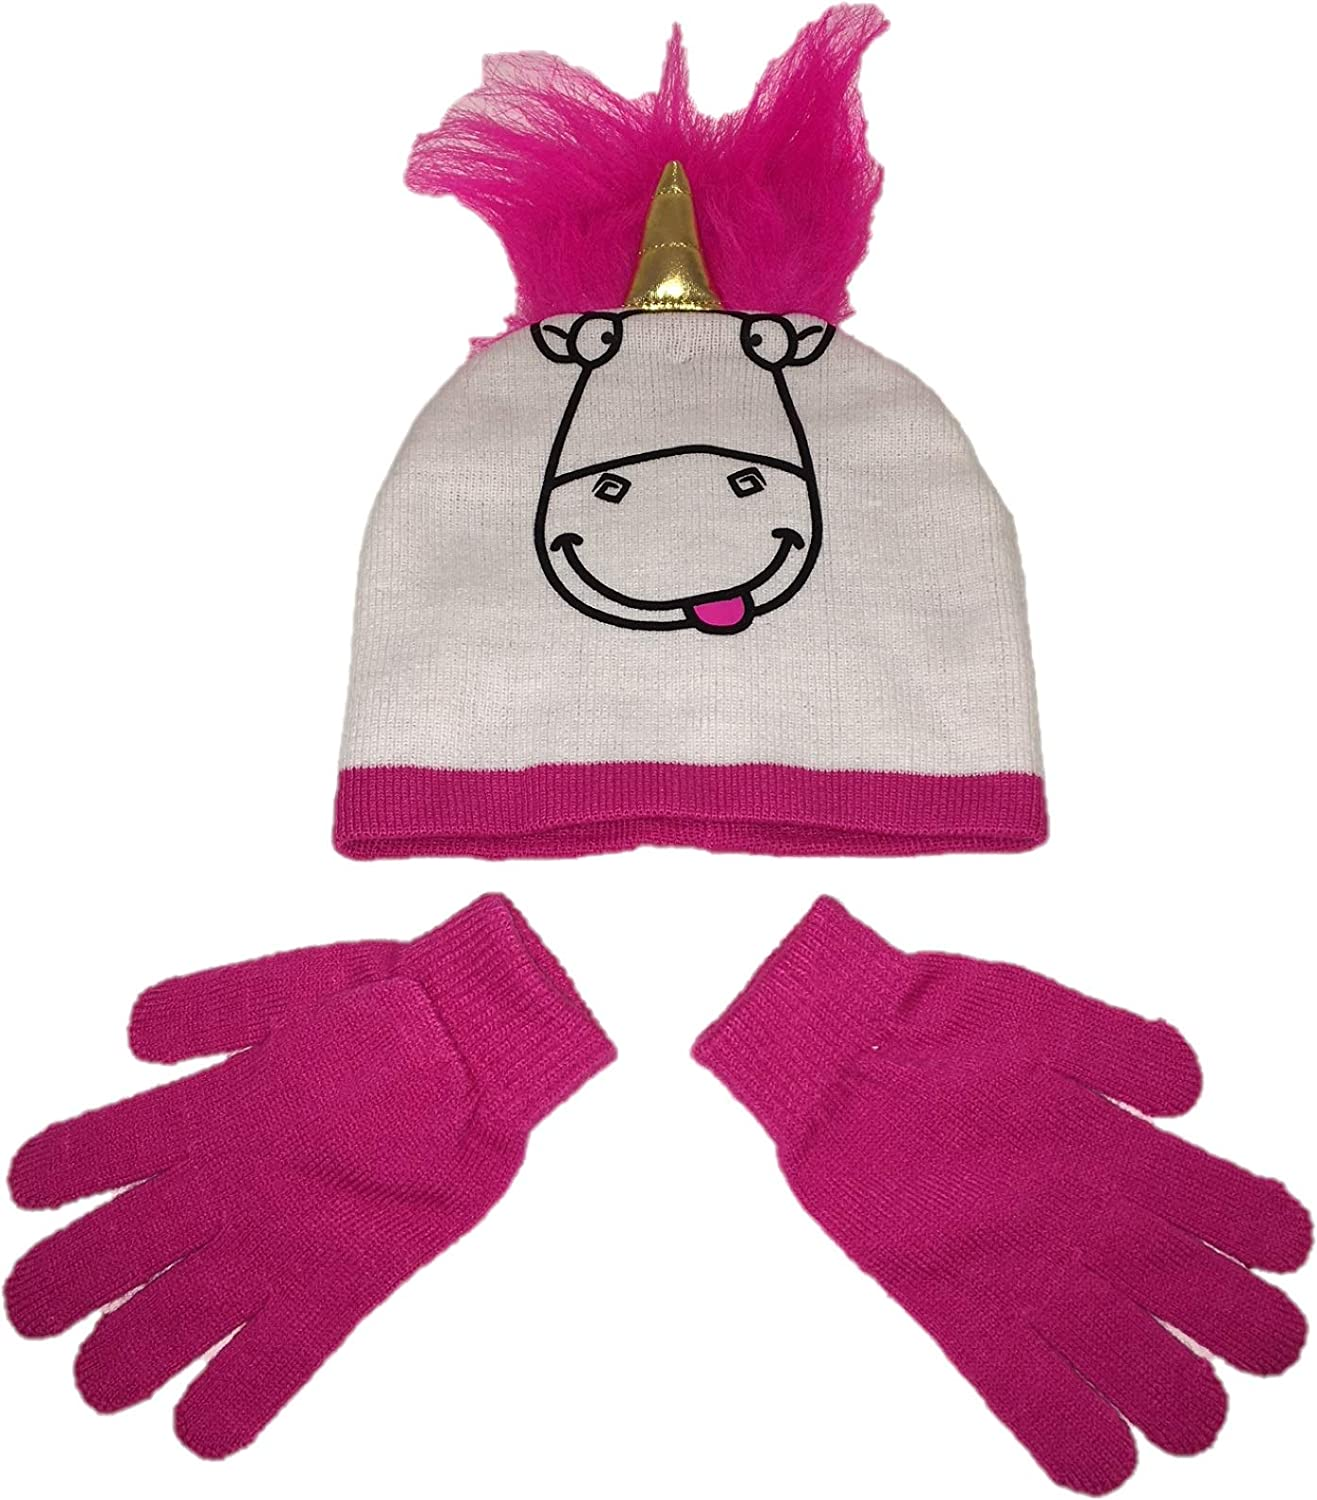 Illumination Unicorn Winter Knit Hat and Mittens for Kids Pink White